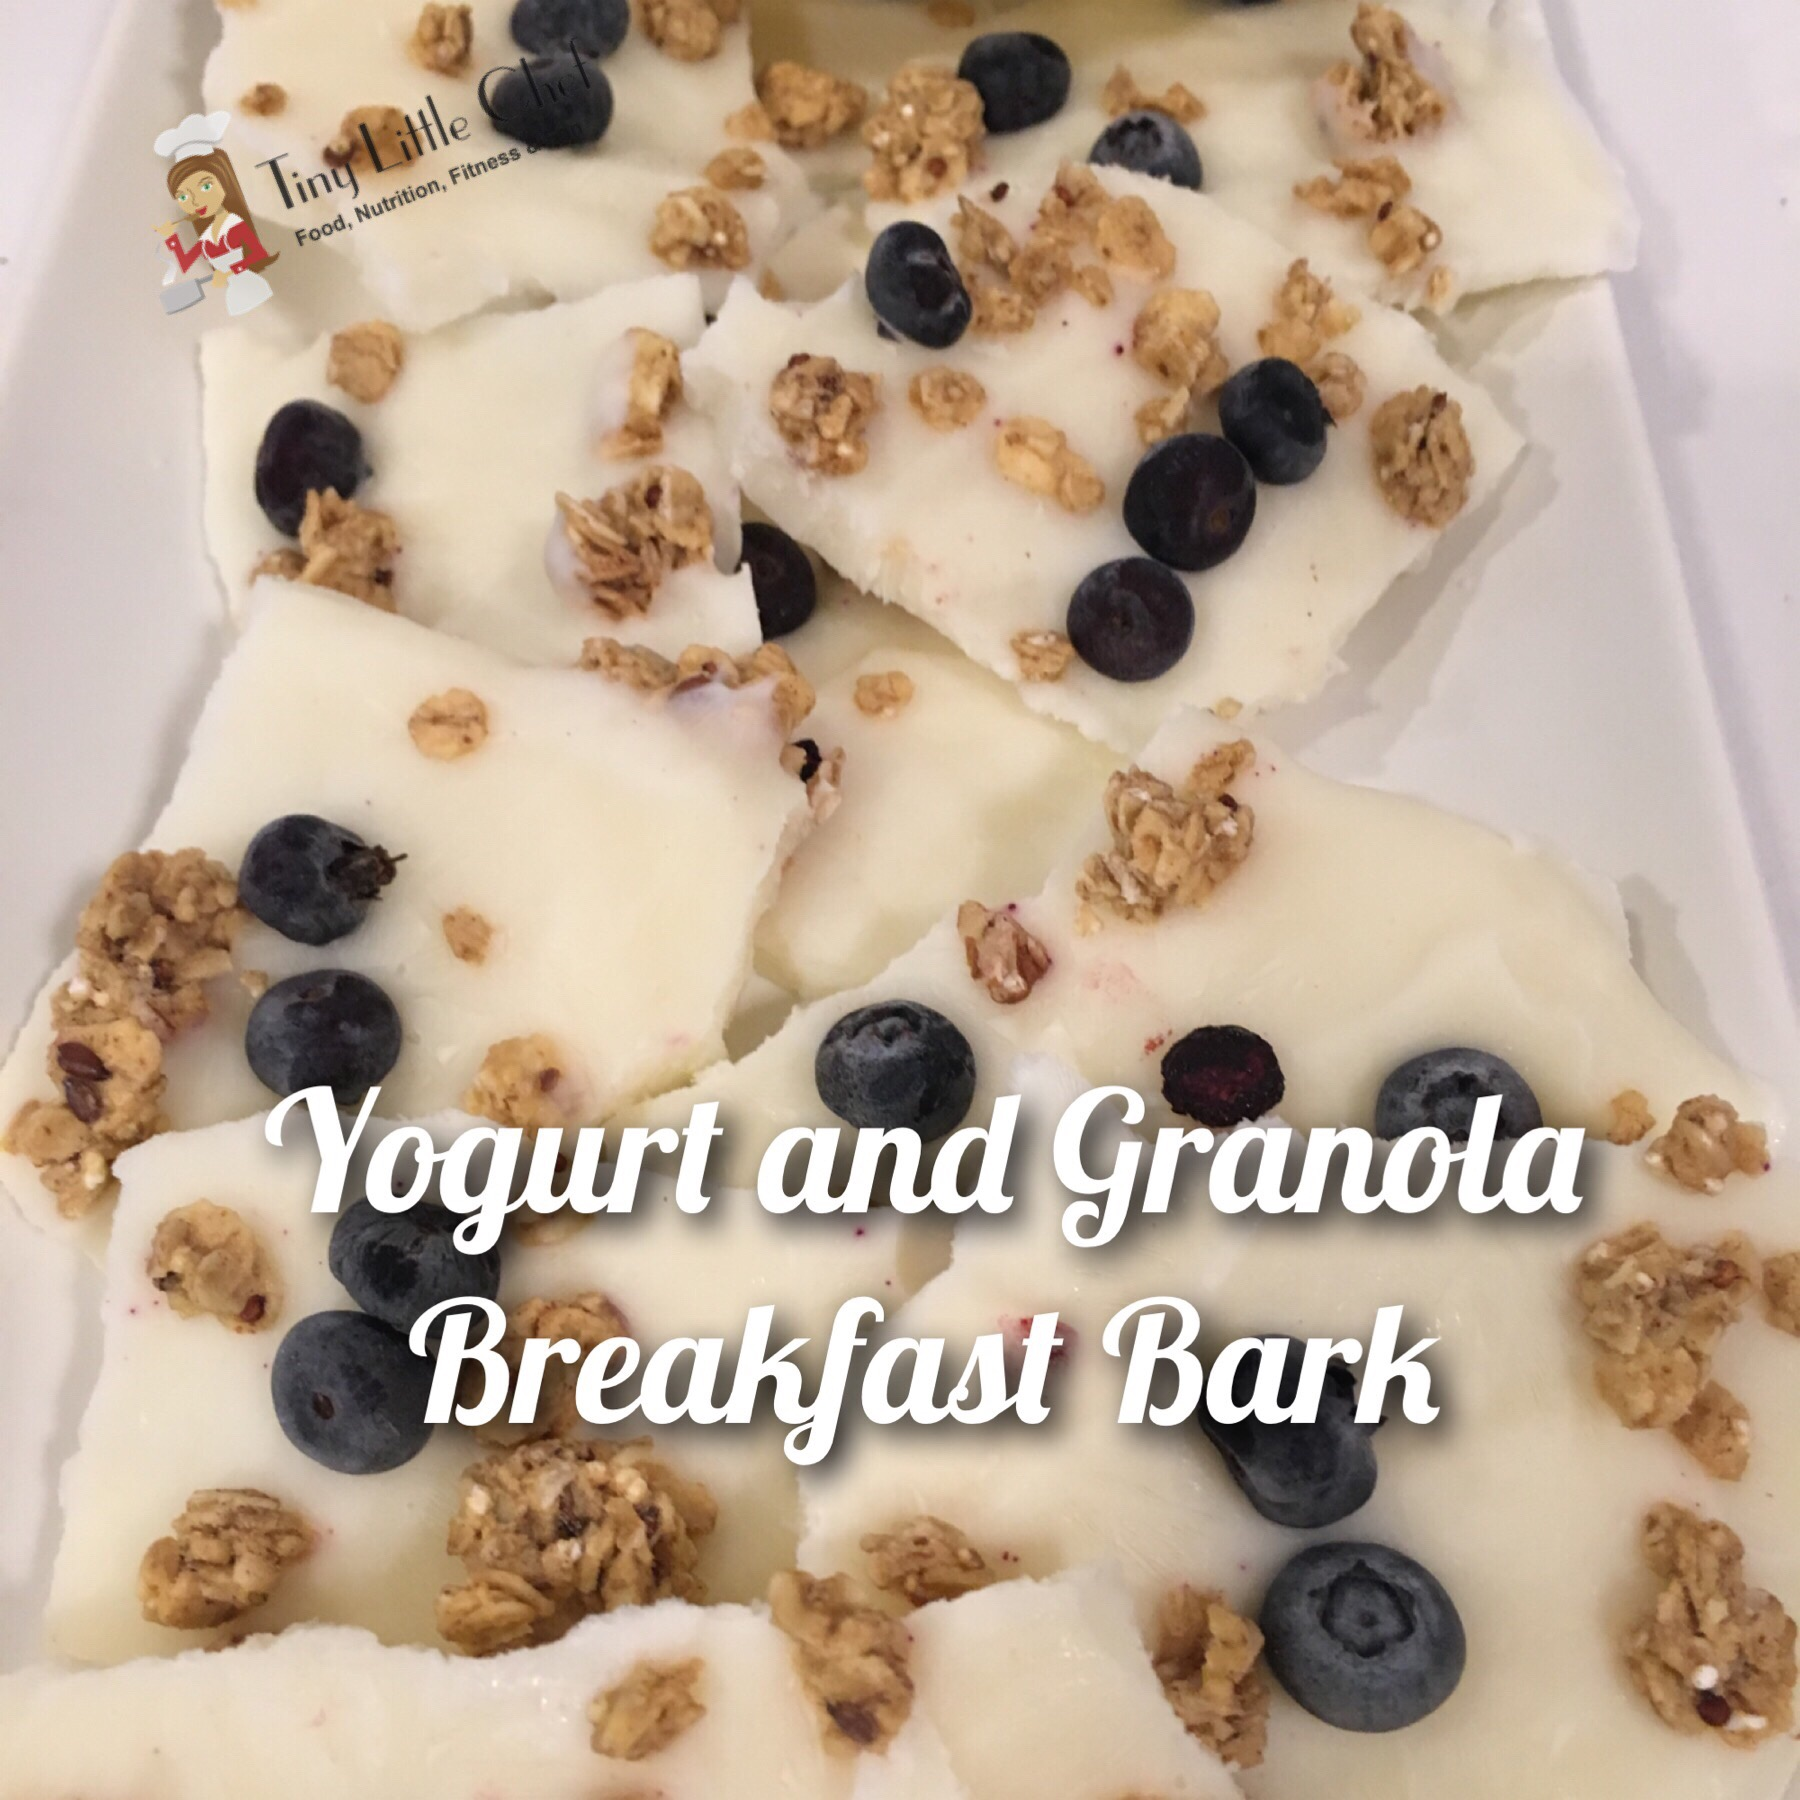 Tiny Little Chef Yogurt and Granola Breakfast Bark